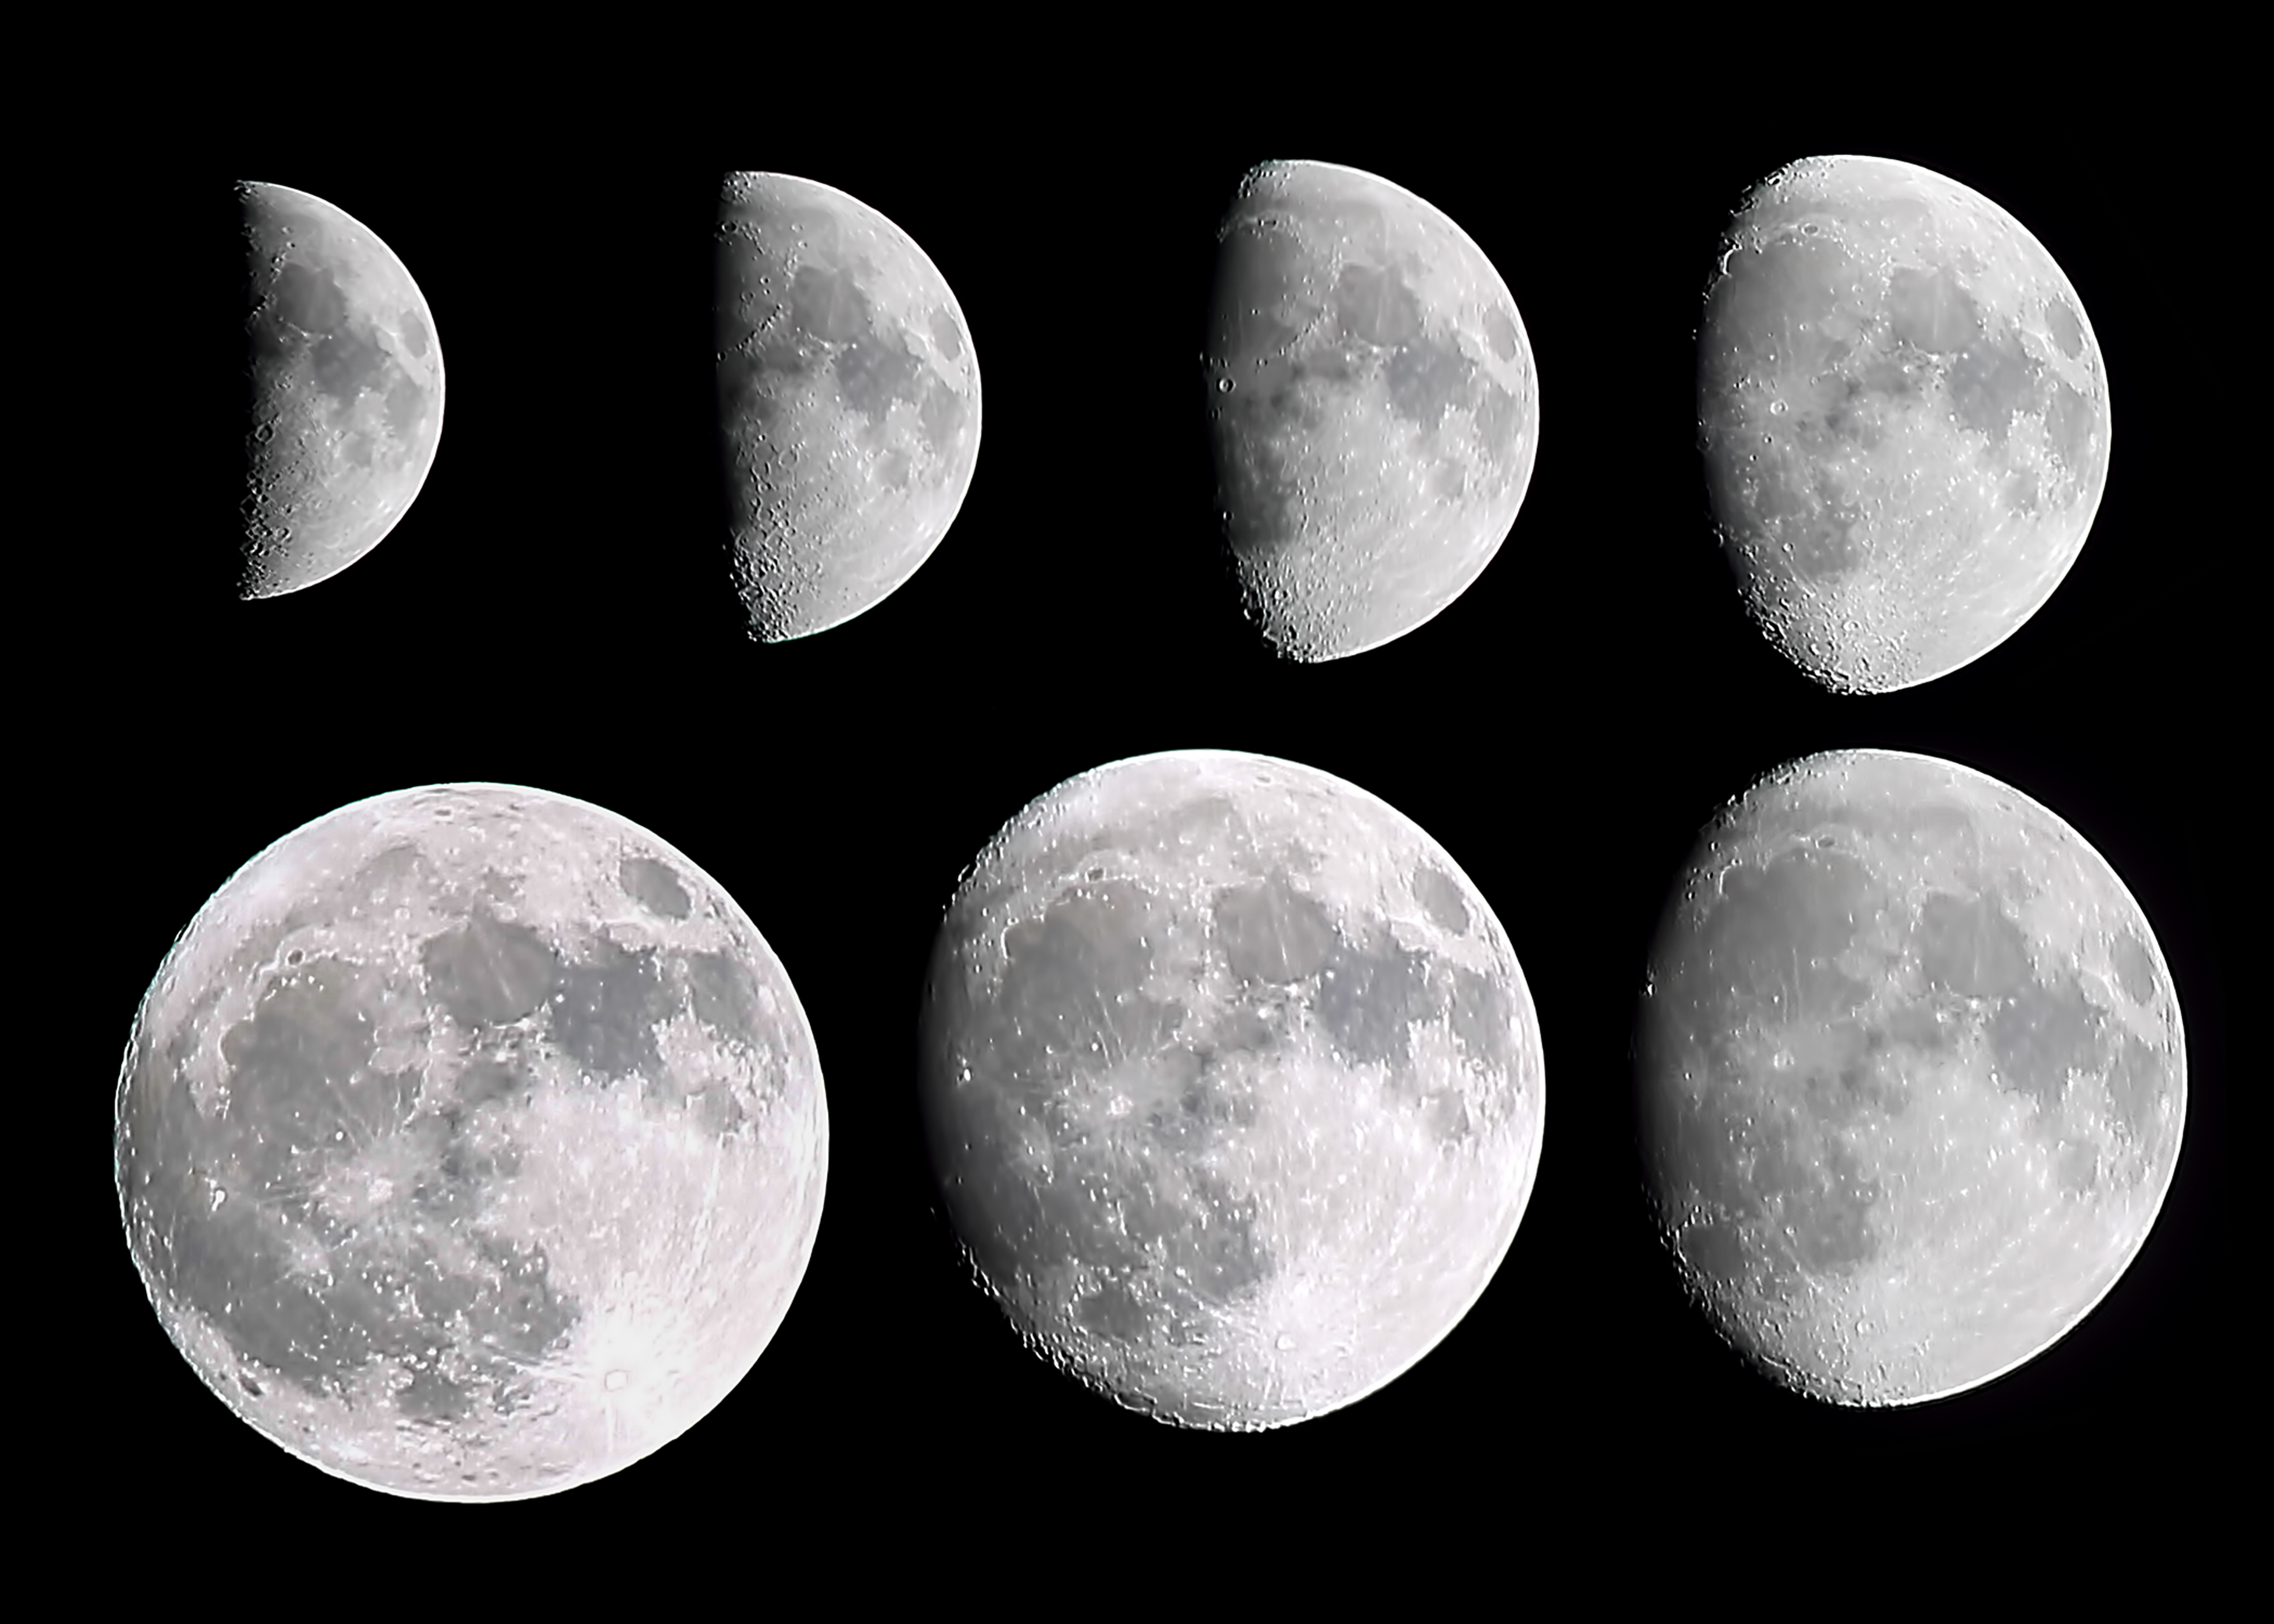 A lunar phase or phase of the moon